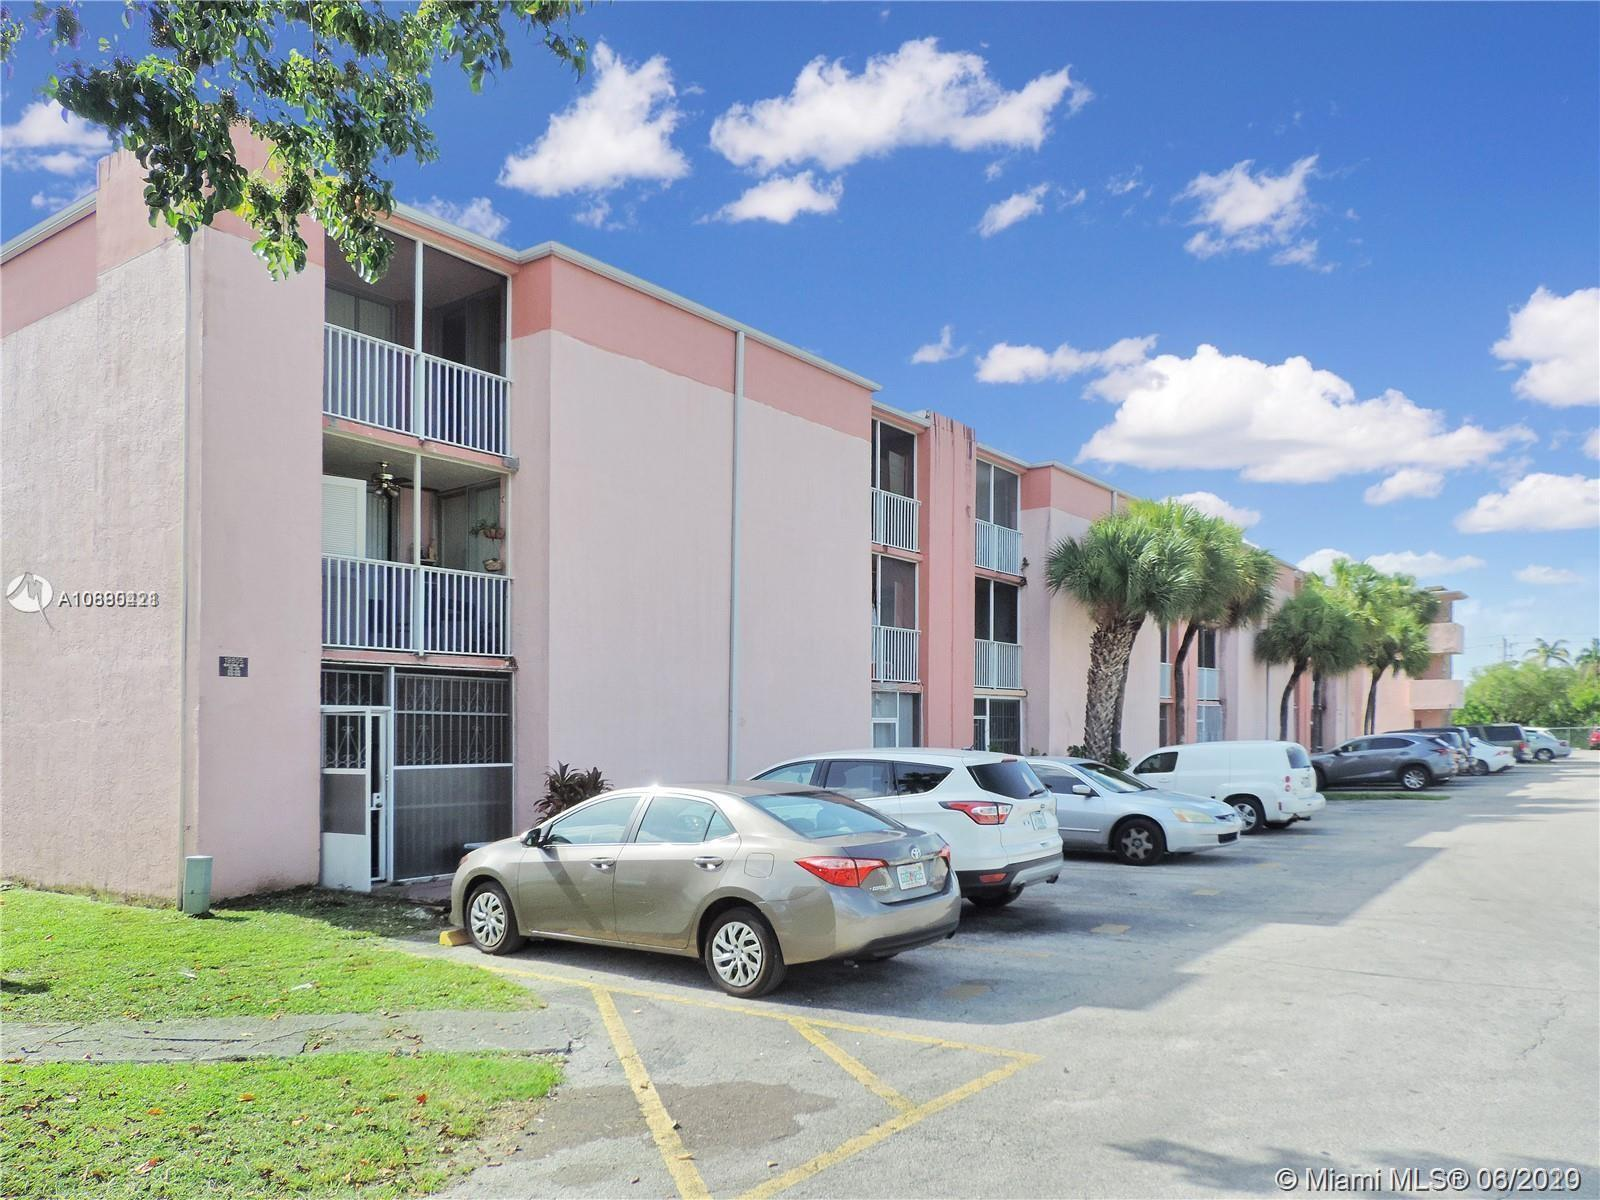 Great Portfolio sale of 10 Units locate close to Southland Mall with easy access to US1 and Florida Turnpike. All unit are 2 Bedroom 2 Baths 800 SQ FT and rented between $1,200.00 to $1,250.00 can be increase rent around 8% return. Some with a 1-year lease others Month to Month. 100% occupied for good tenants and high demand rental area. The 10 units are located in a complex called Point South. It is not a 10 unit building. All unit are in average to good condition.